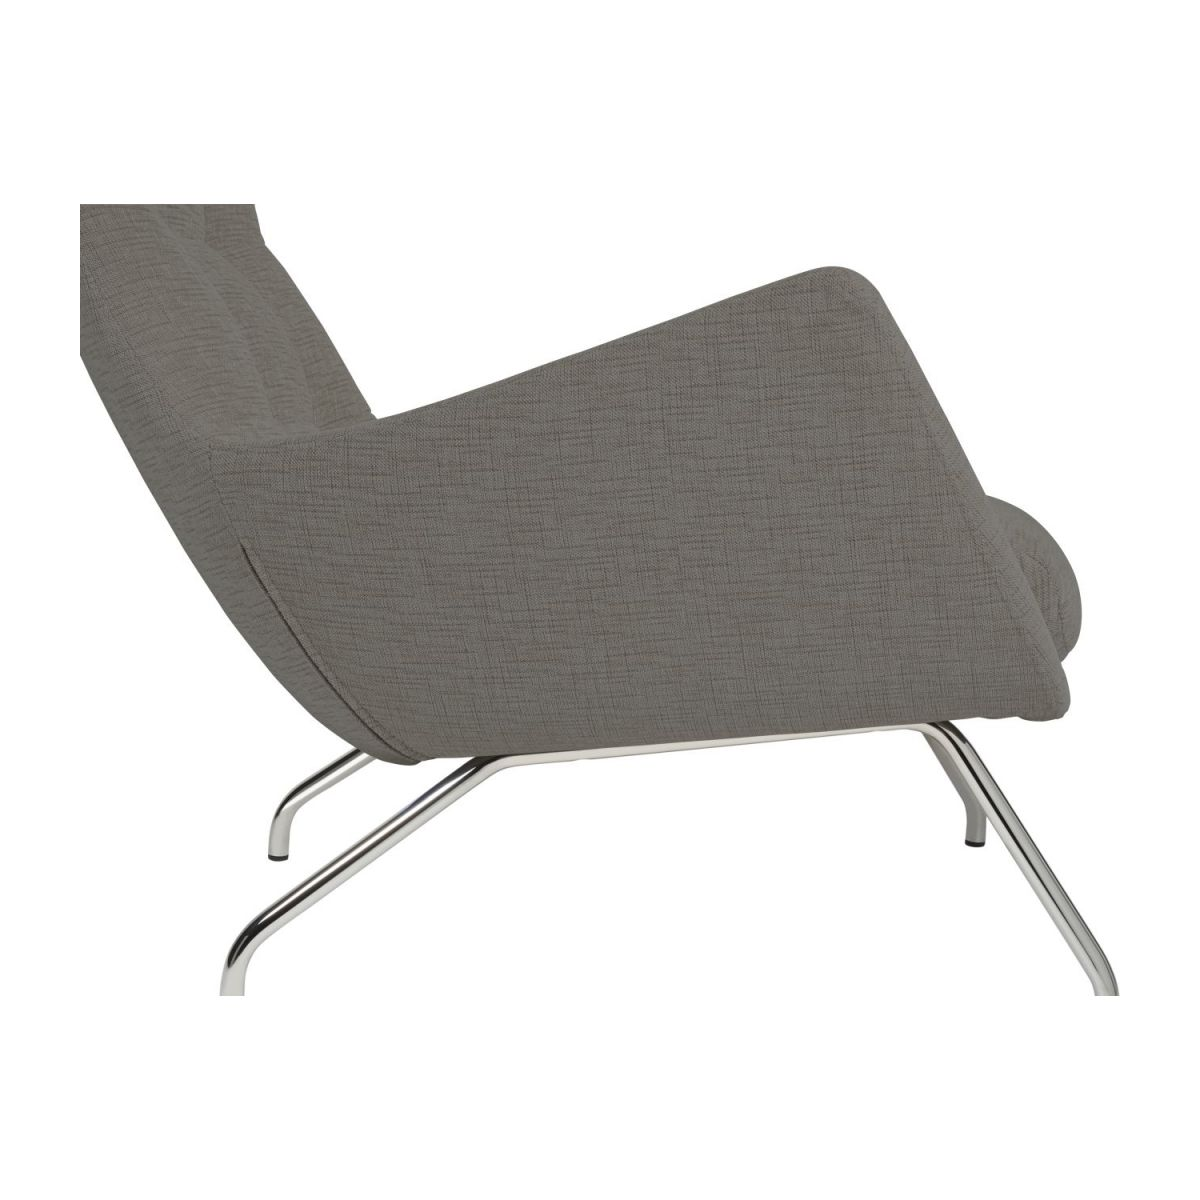 Armchair in Ancio fabric, river rock with chromed metal legs n°6